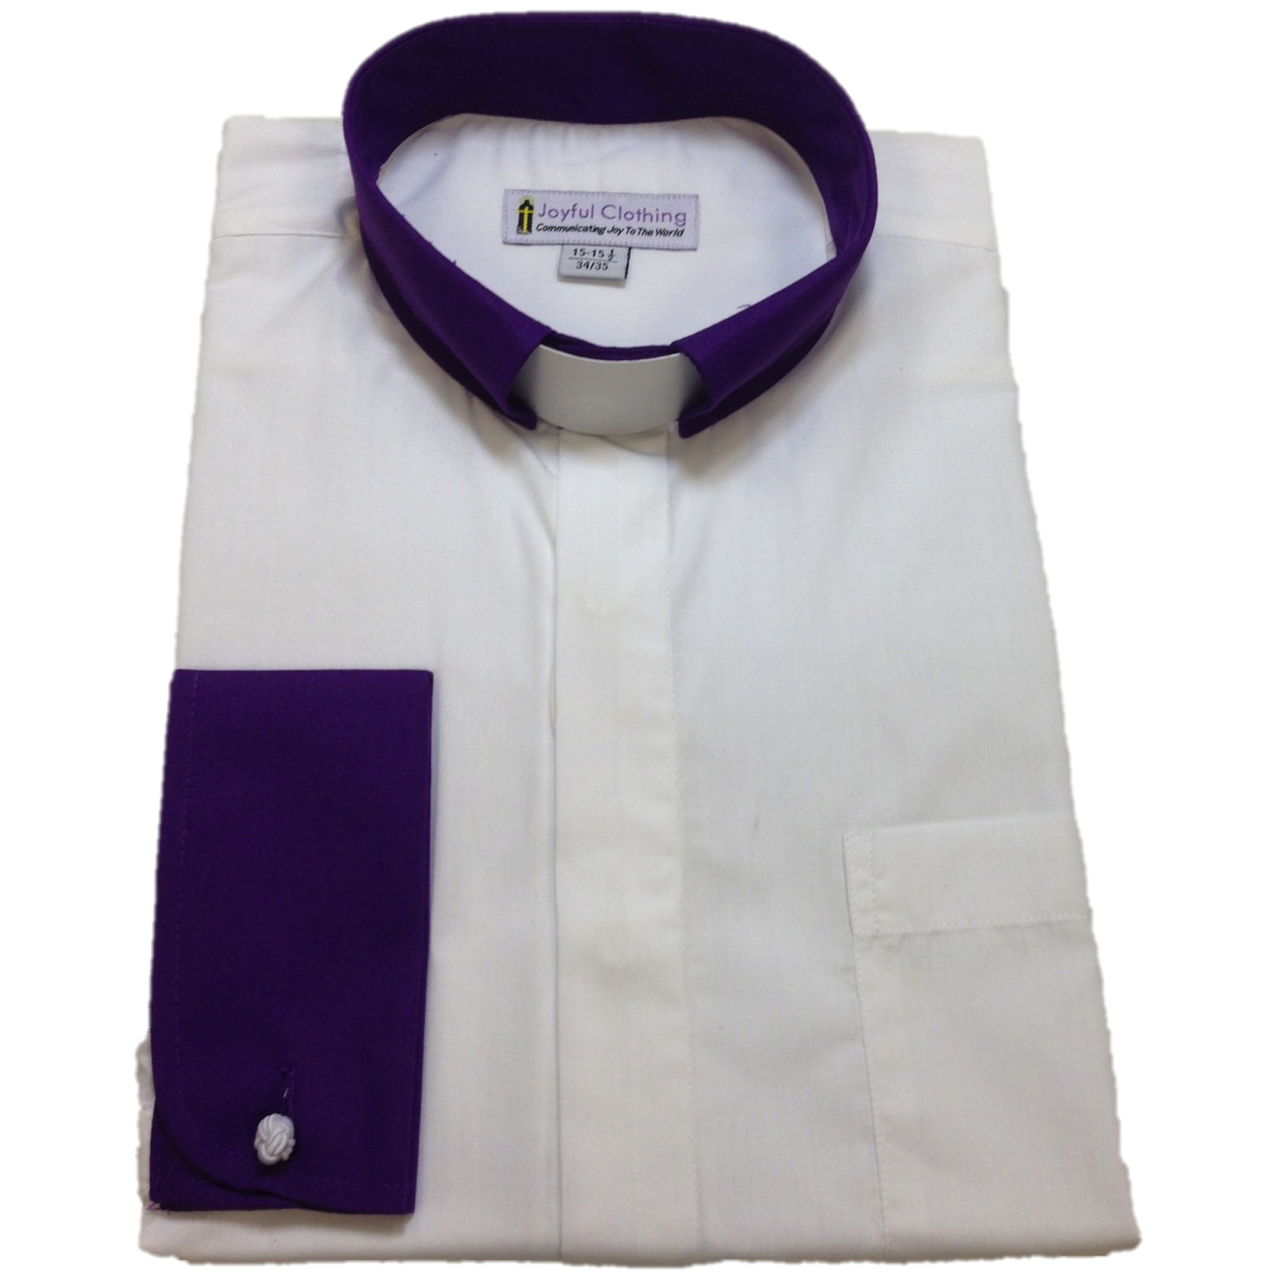 136. Men's Contrast Tab-Collar Clergy Shirt - White/Purple Collar